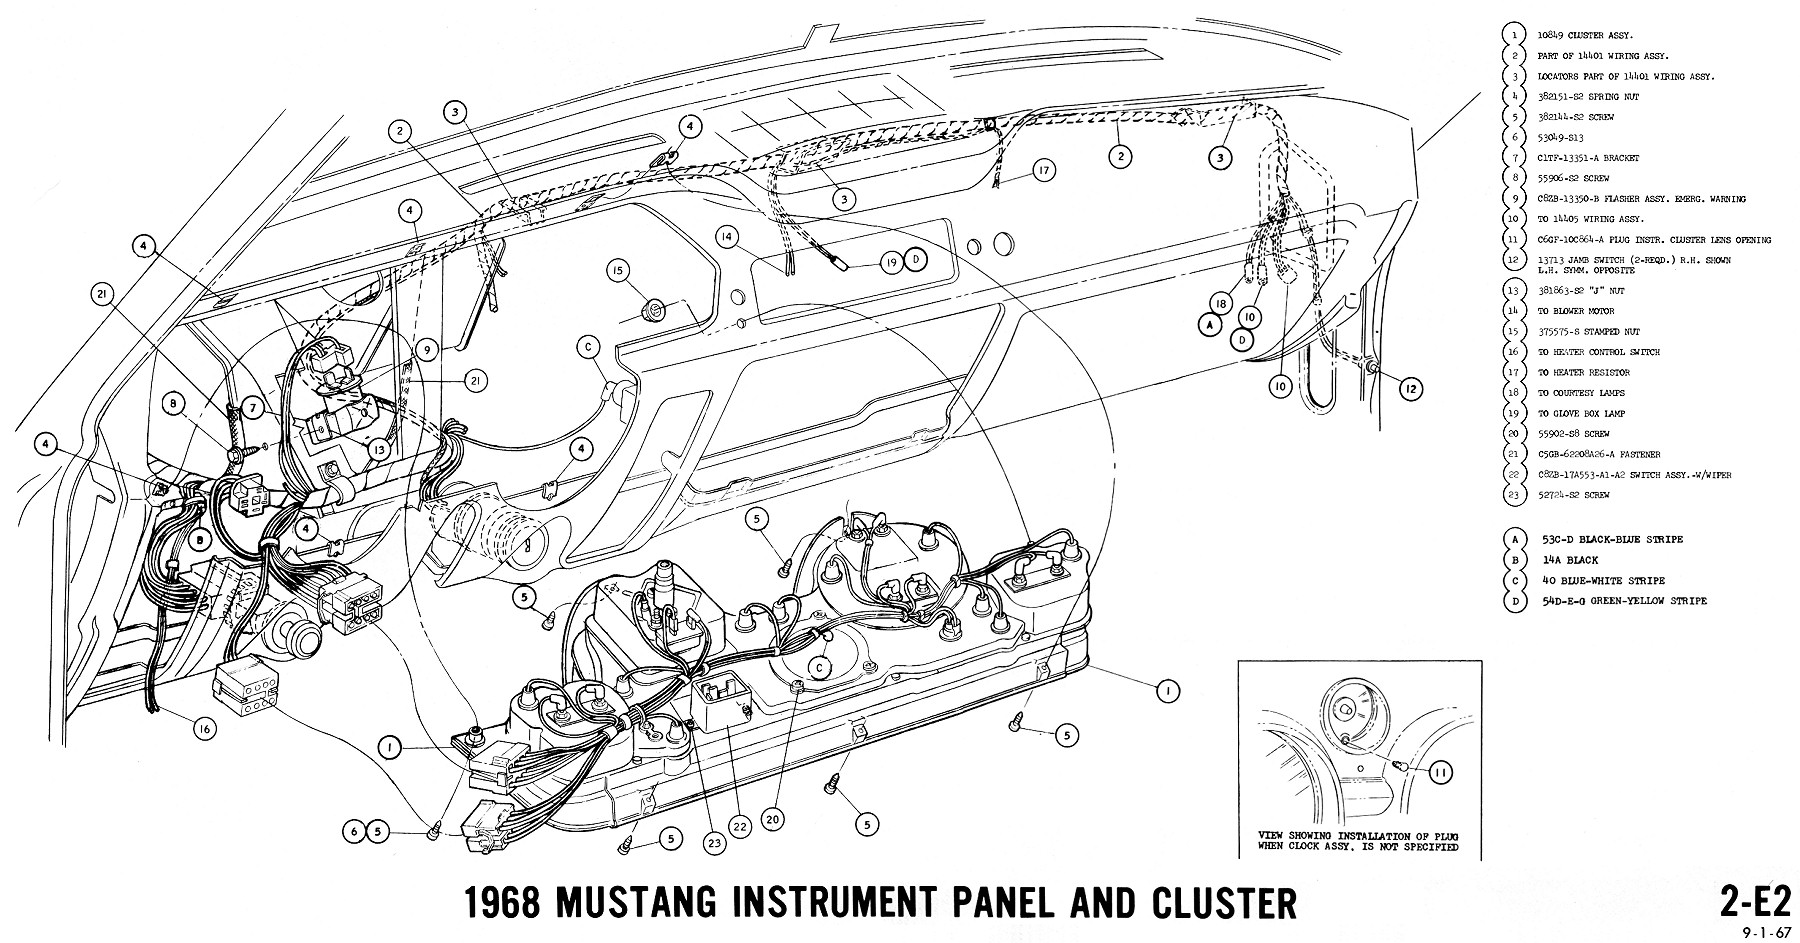 1968 mustang wiring diagram instruments 2 wiring diagram for a 1968 ford mustang readingrat net 1970 mustang radio wiring diagram at virtualis.co